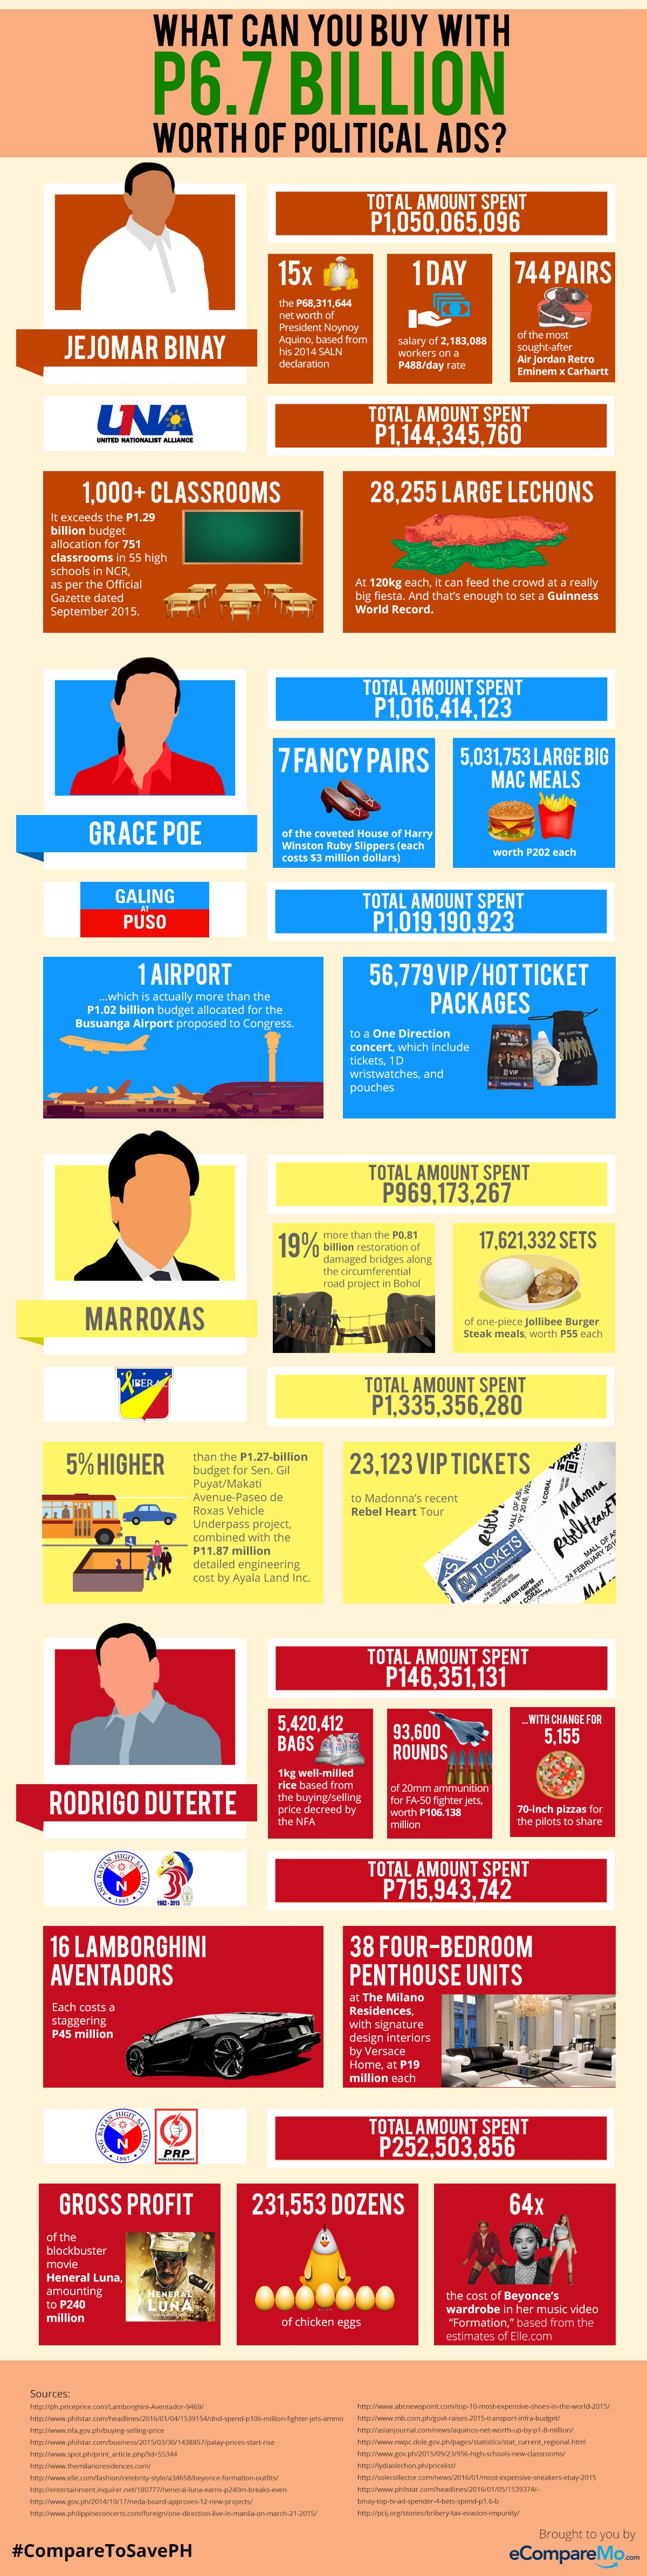 INFOGRAPHIC: What Can You Buy With P6.7 Billion Worth Of Political Ads